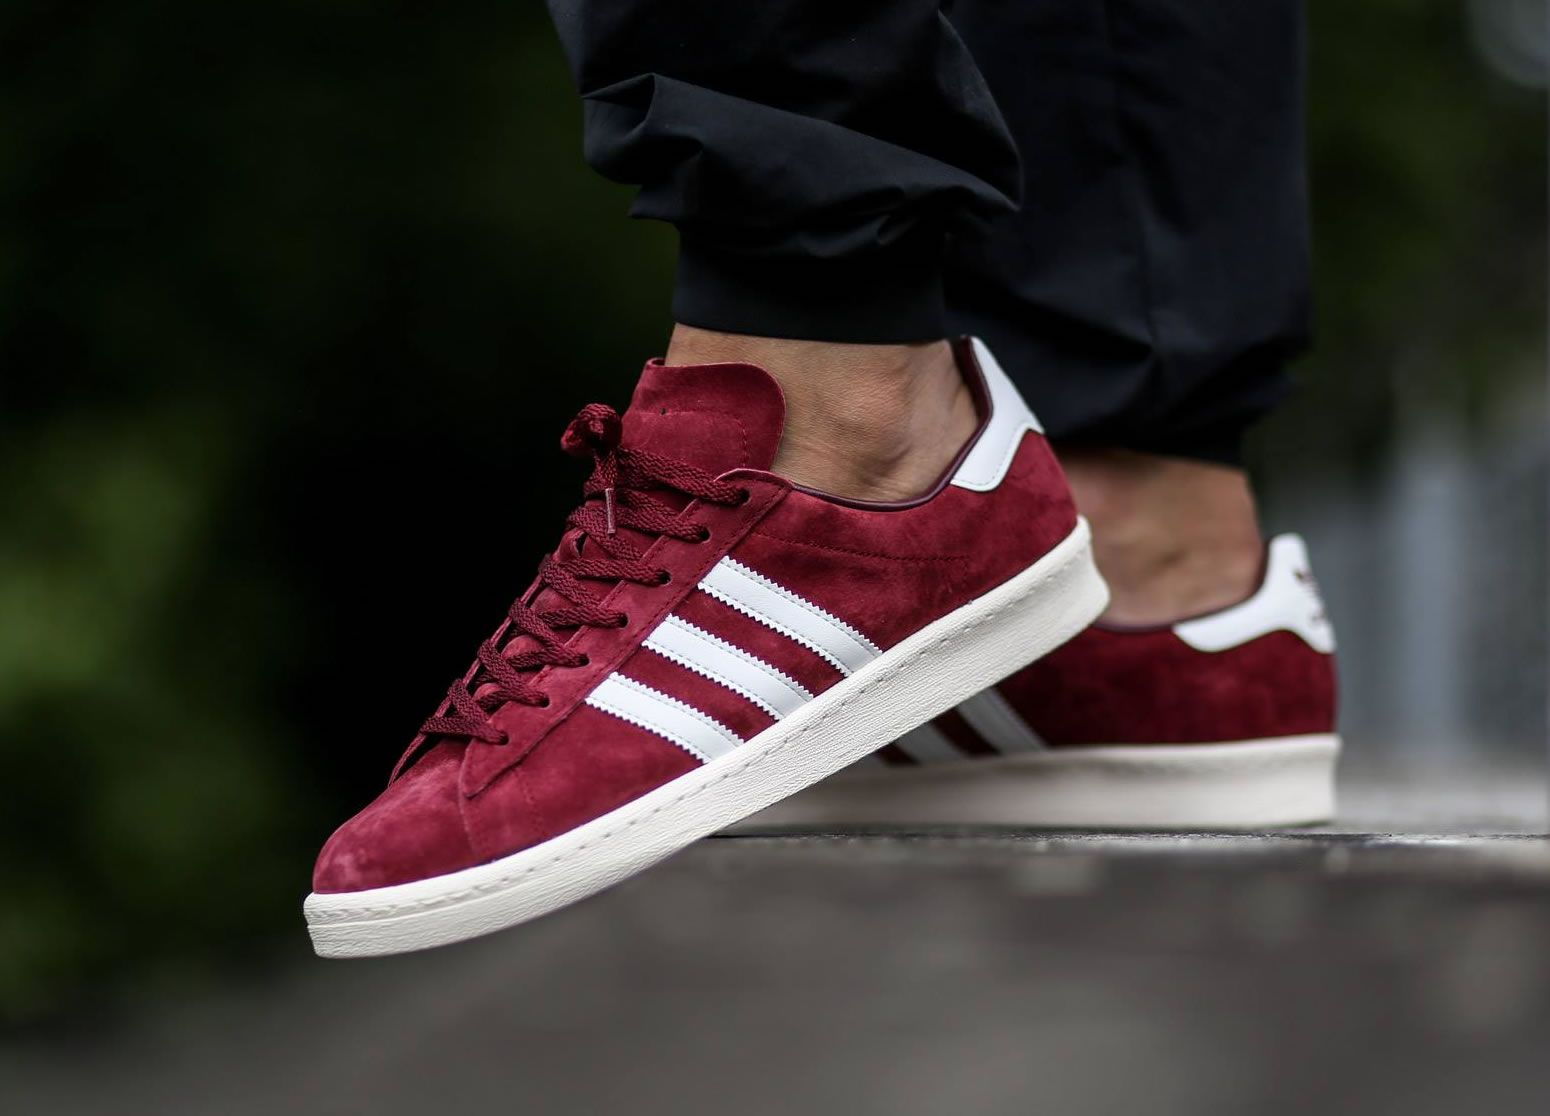 Adidas Menswear - Adidas Originals Campus Trainers Burgundy